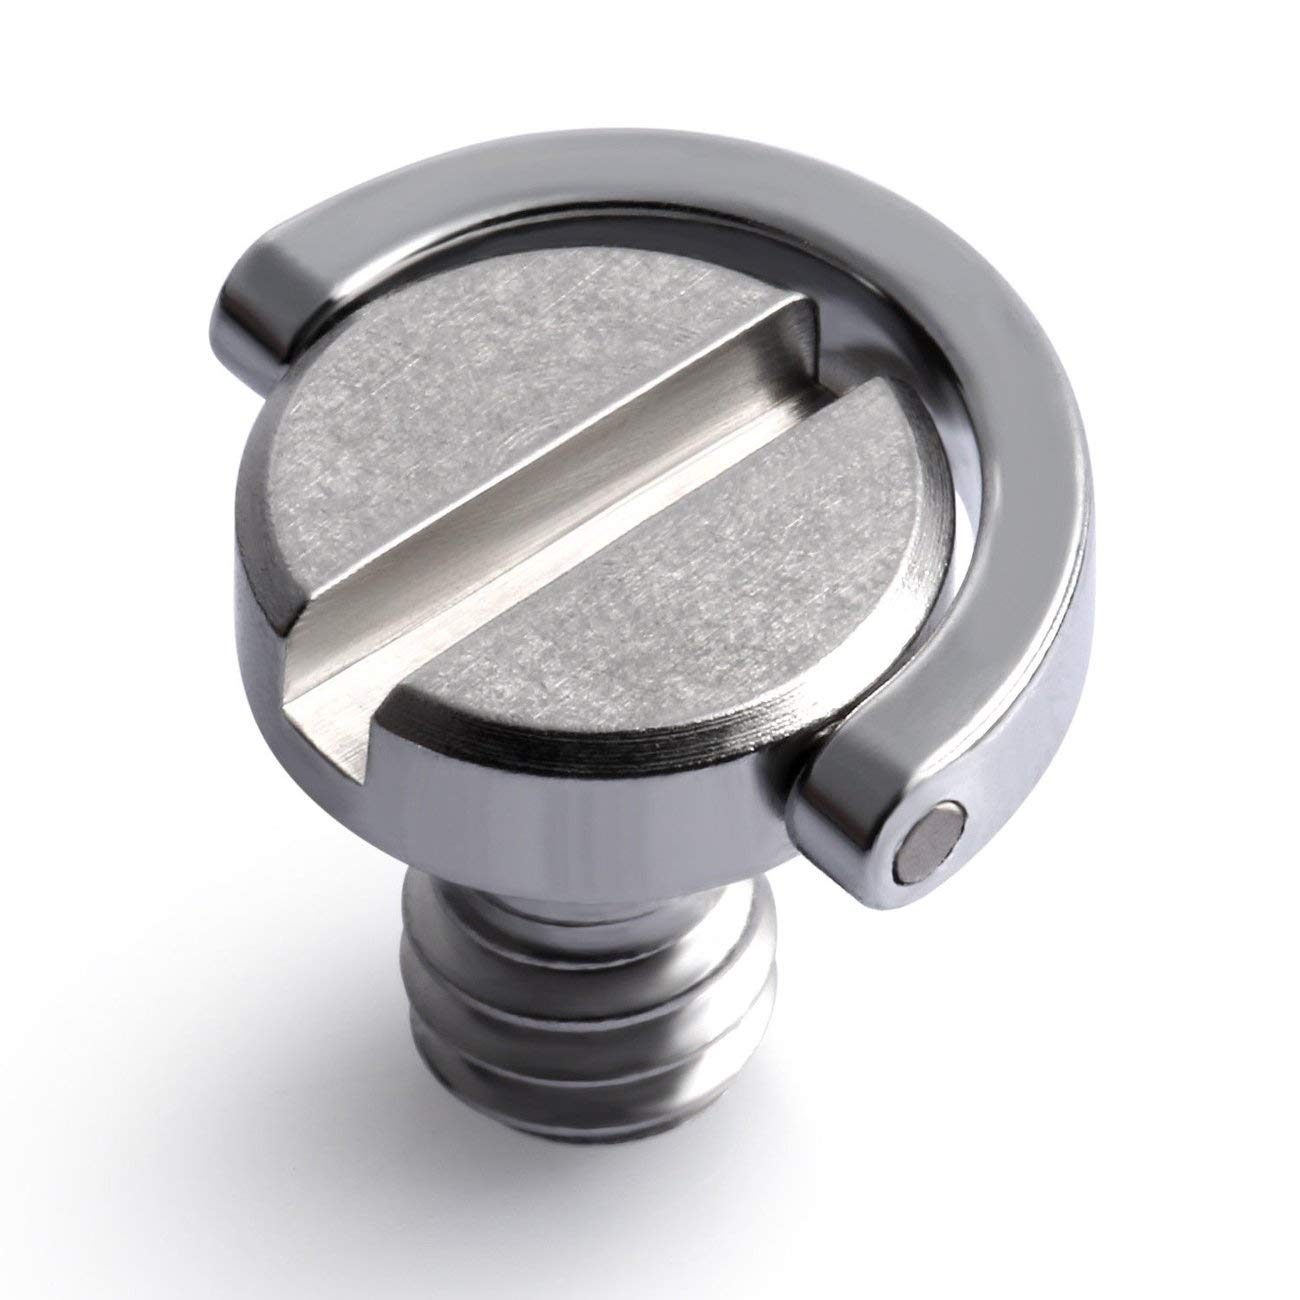 FayOK 1//4 Screw with D Ring Compatible for Camera Tripod//Monopod//Quick Release Plate